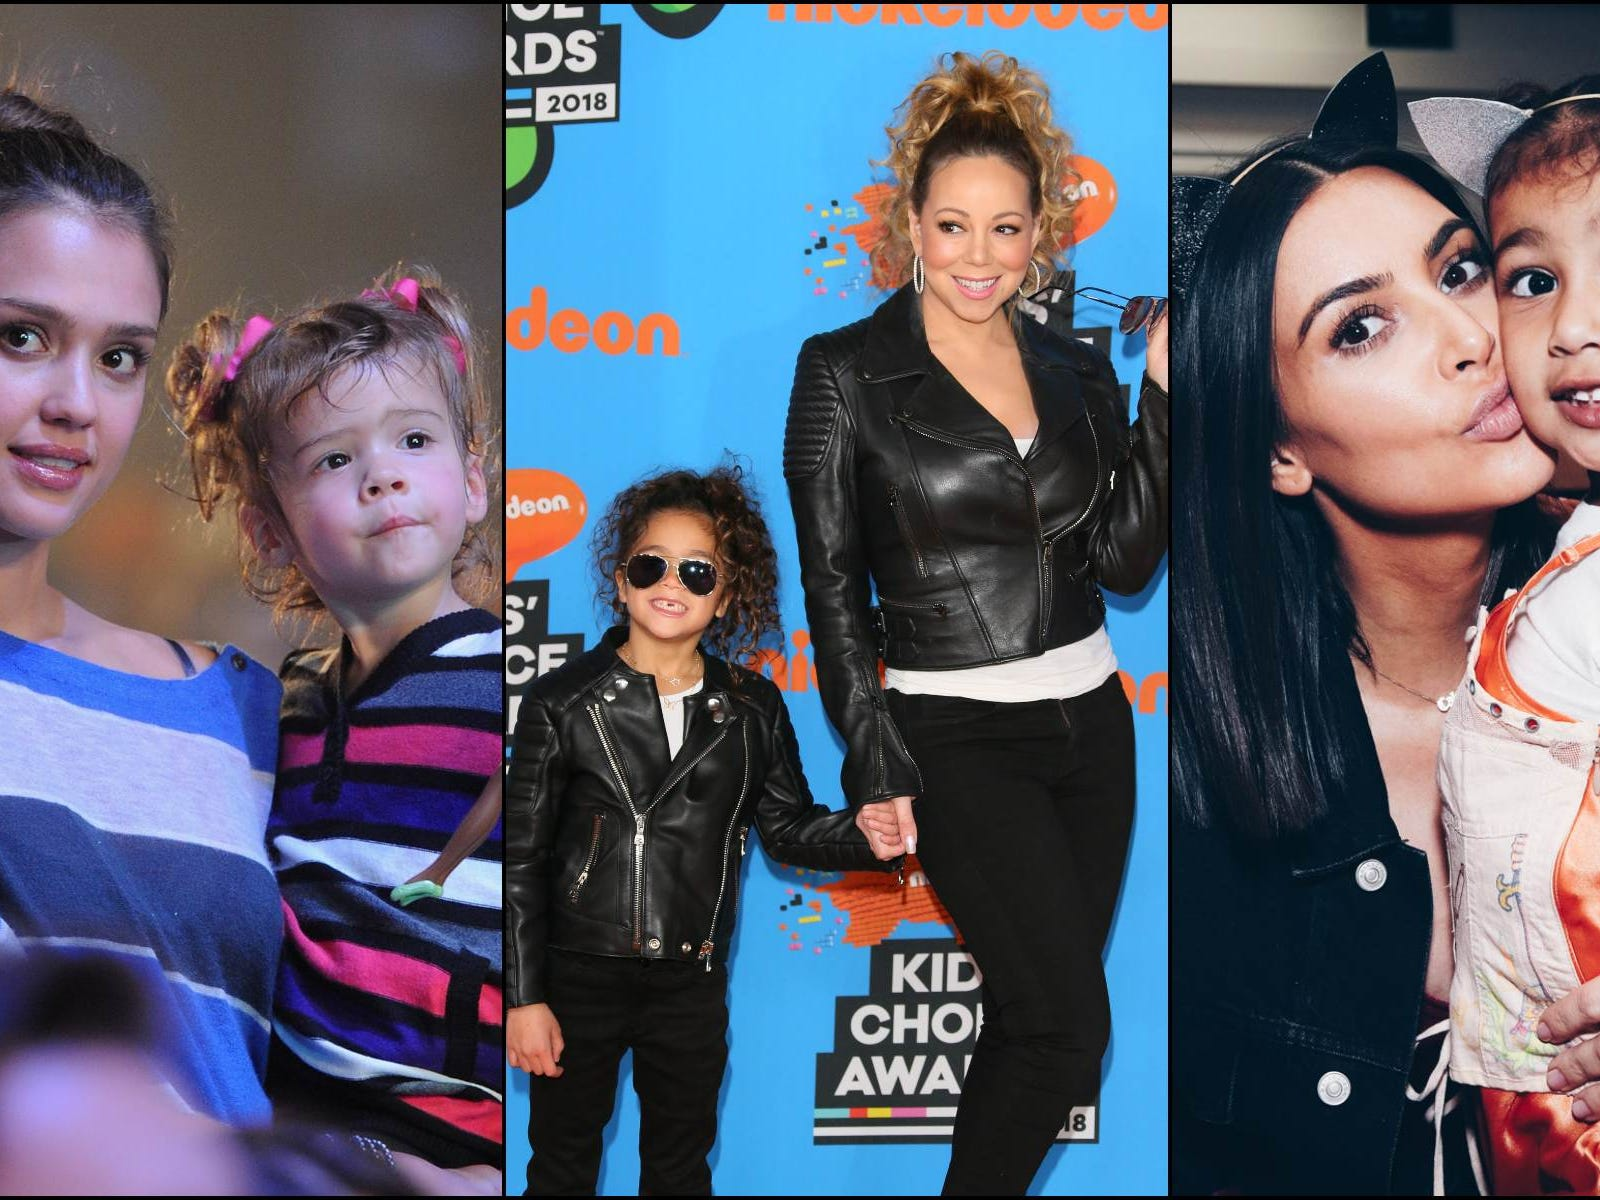 From Audio Science to Zolten, we love these weird celebrity baby names